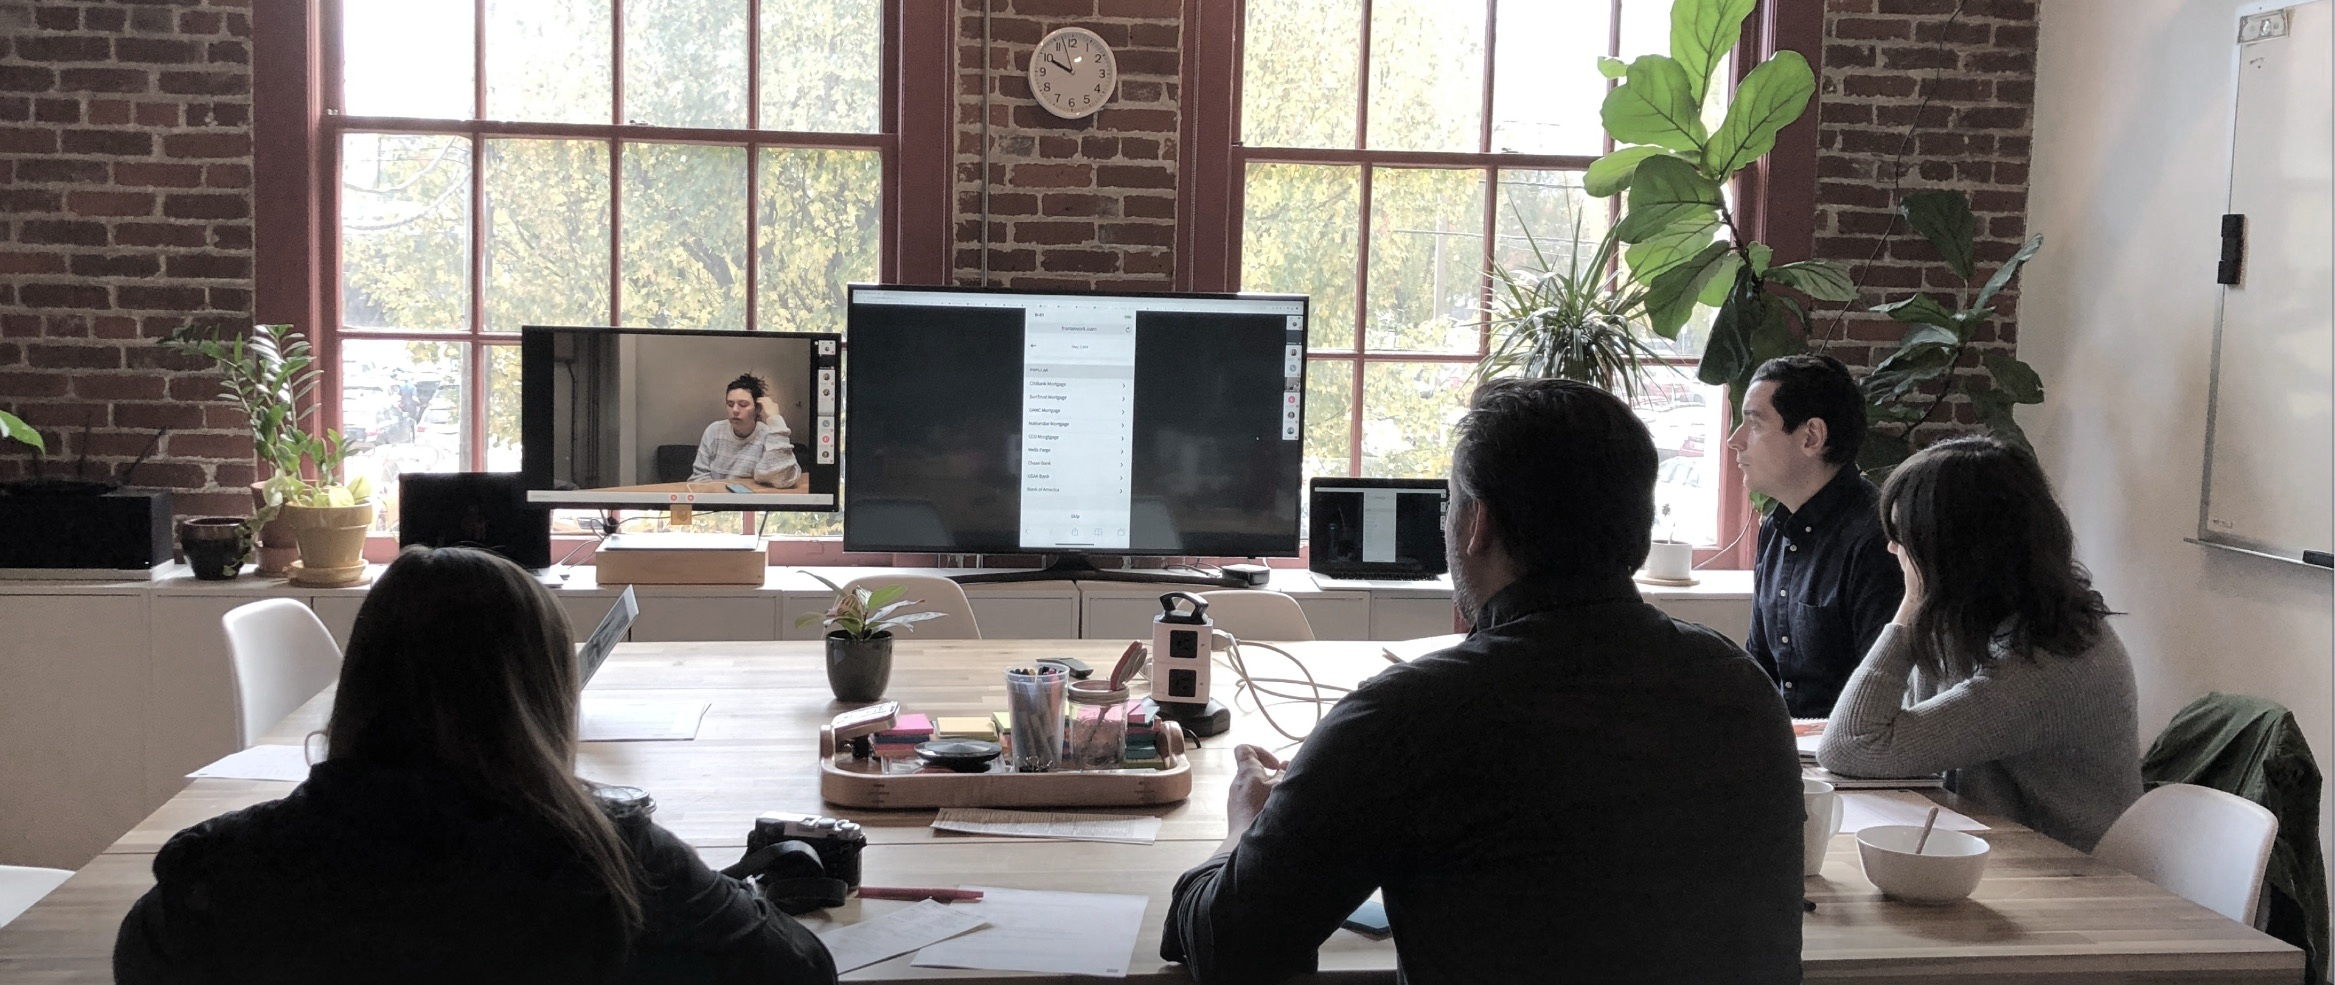 Research sessions were done using prototypes built in Sketch and InVision to gather key insights for each of the three iterations done over a 4 month period